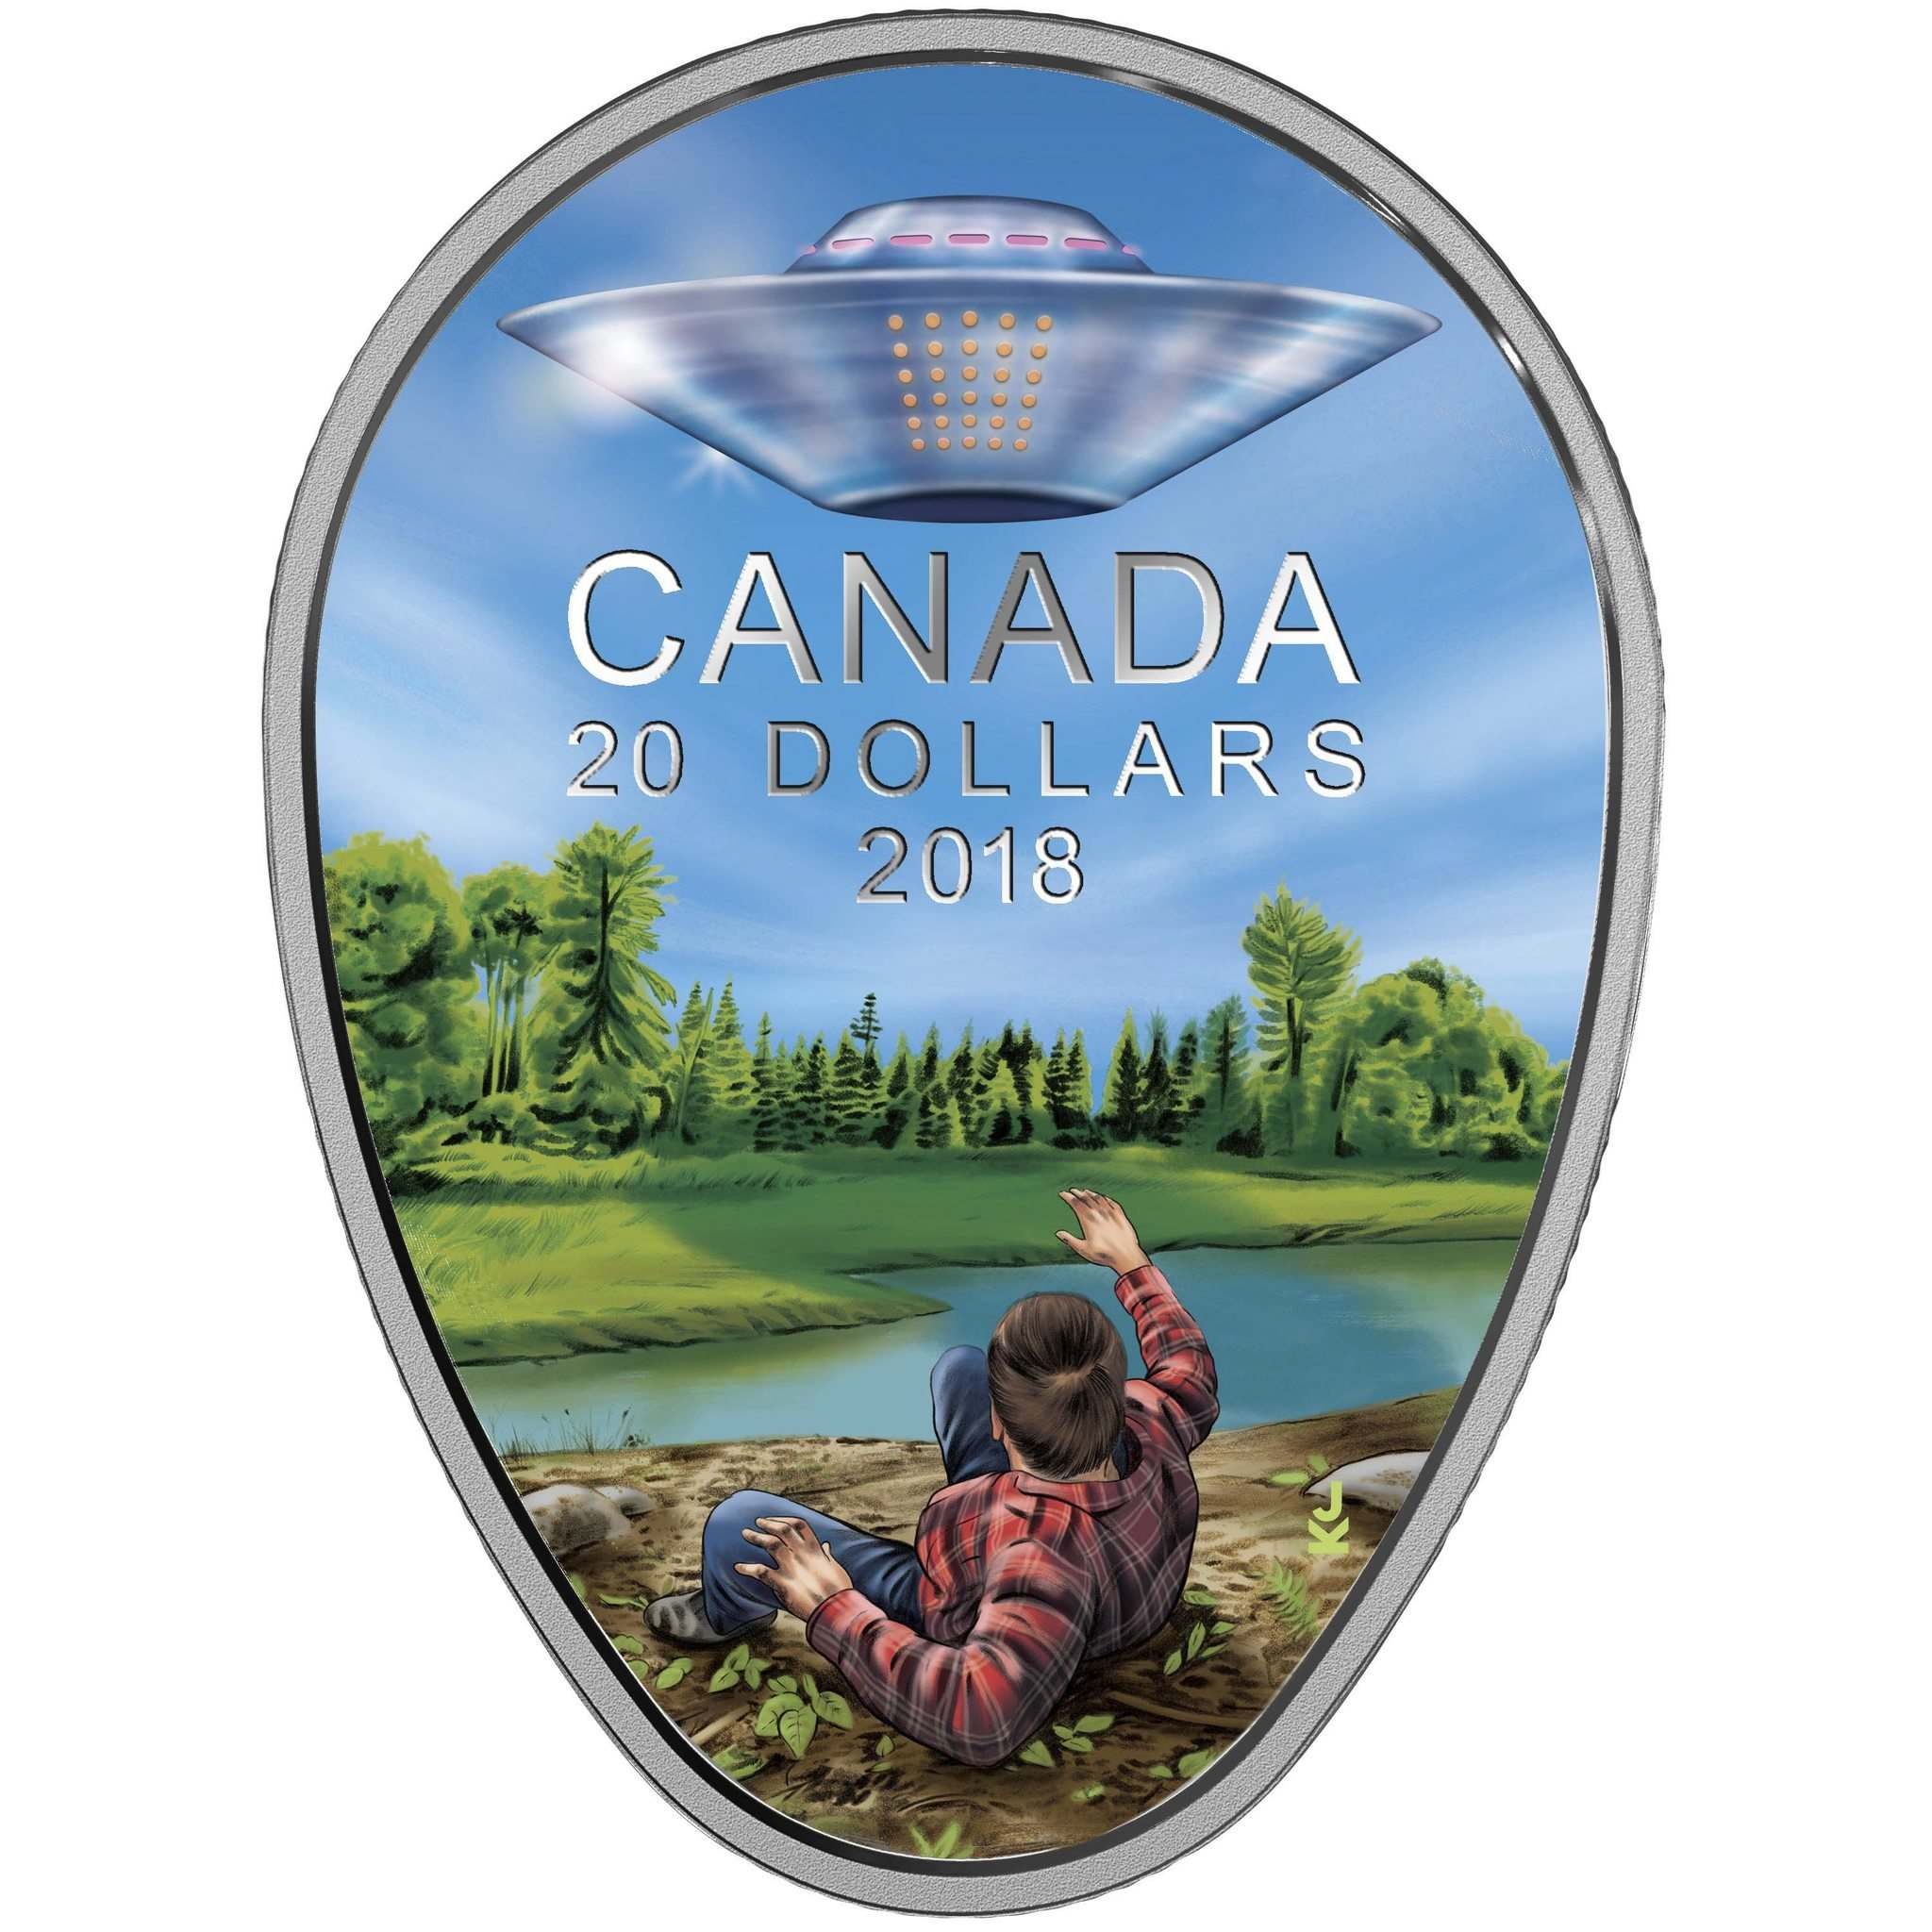 SUPPLIED</p><p>The Royal Canadian Mint is releasing a limited edition coin on April 3 to commemorate the Falcon Lake Encounter where amateur prospector Stefan Michalak saw an unknown flying saucer in the Whiteshell Provincial Park in 1967.The coin has the Queen on one side and a depiction of Michalak and the saucer on the other. The coin itself is oval shaped and is sold with a special blacklight flashlight which makes the saucer and a burst of light glow. </p>